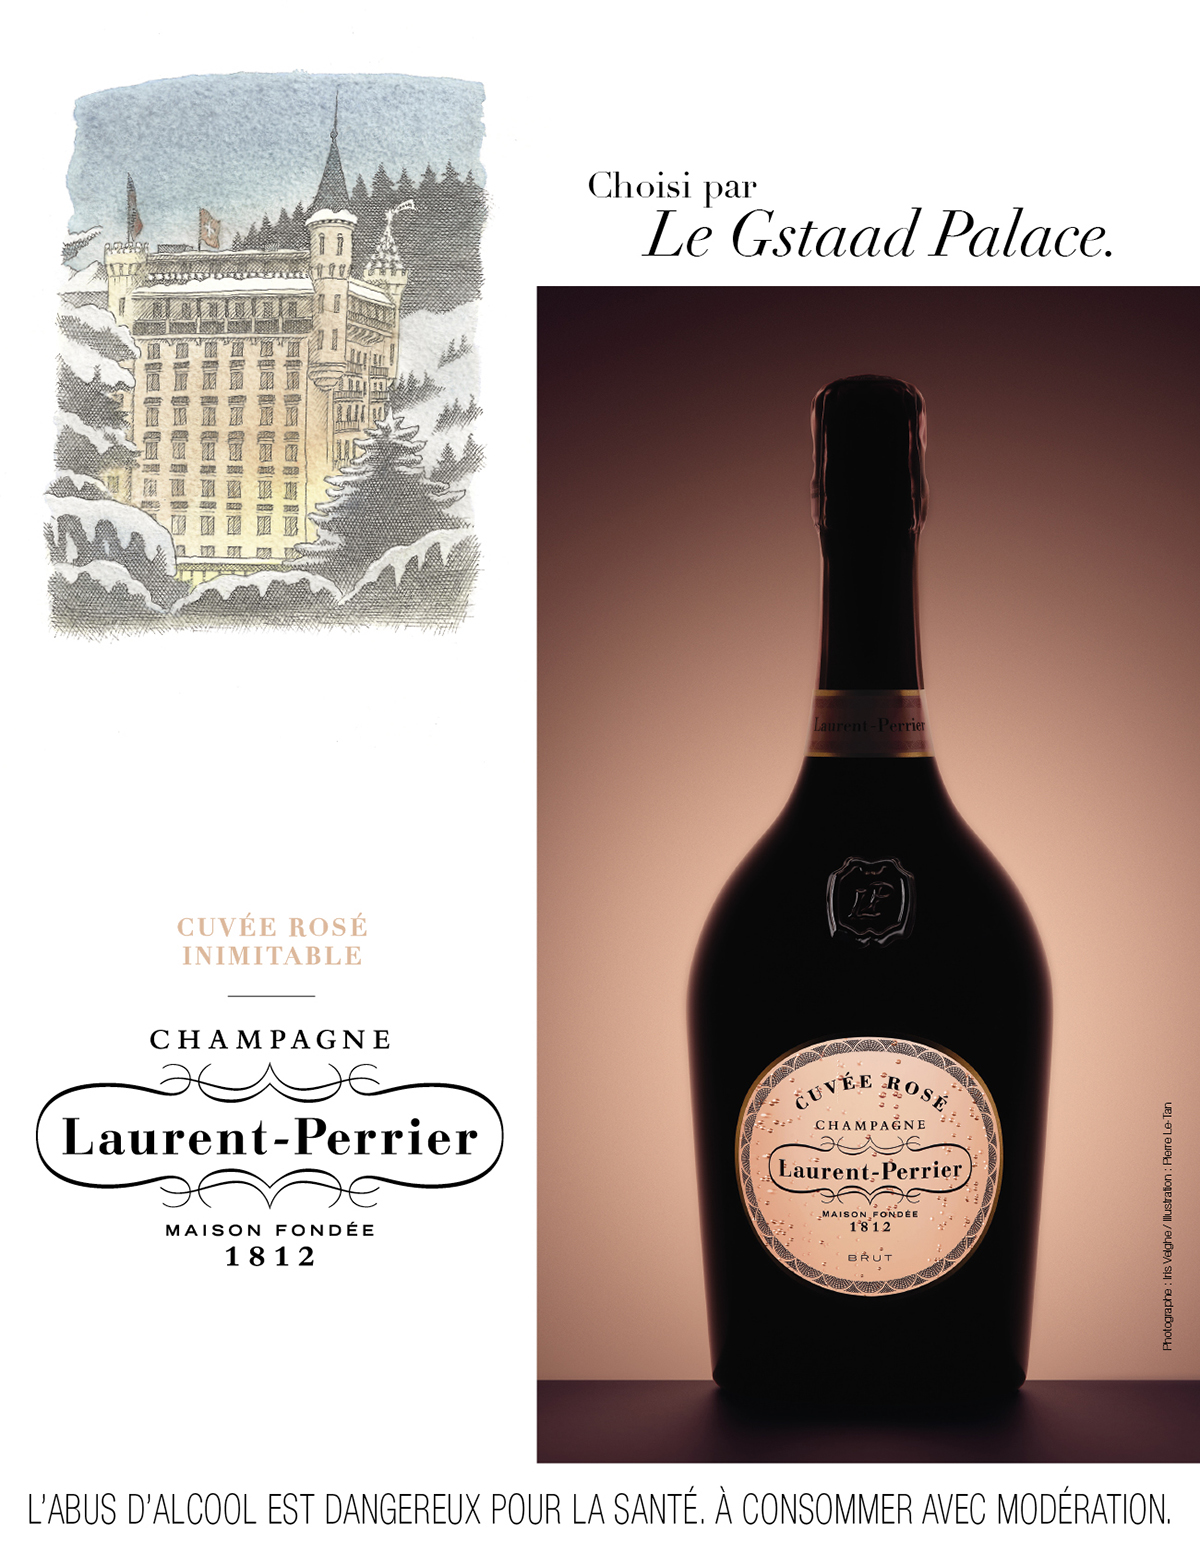 laurent-perrier-champagne-publicite-marketing-ads-cuvee-rose-tour-argent-meurice-gstaad-palace-ritz-dorchester-gavroche-agence-publicis-conseil-3